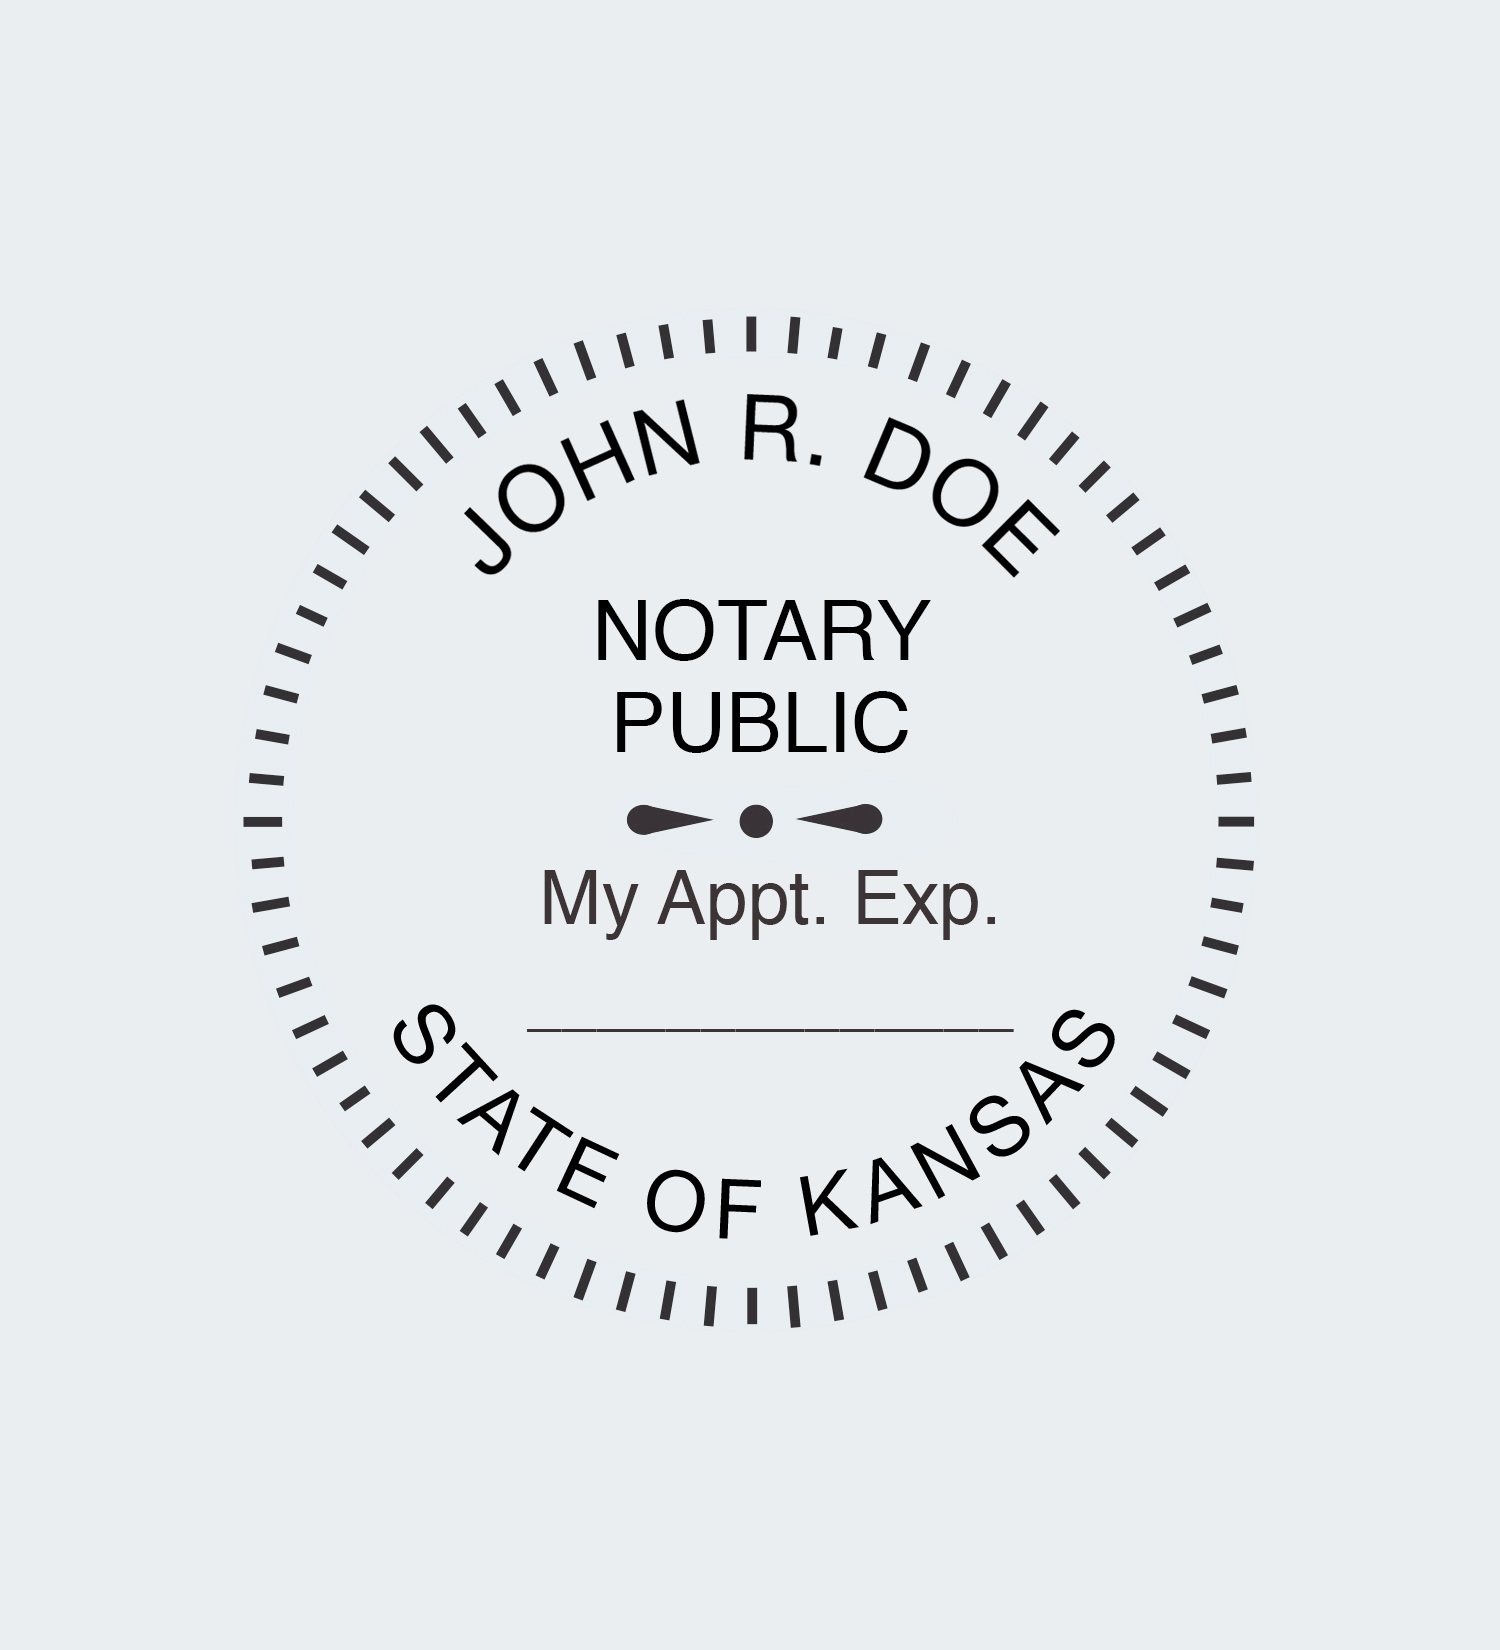 Kansas Notary Seals Nna